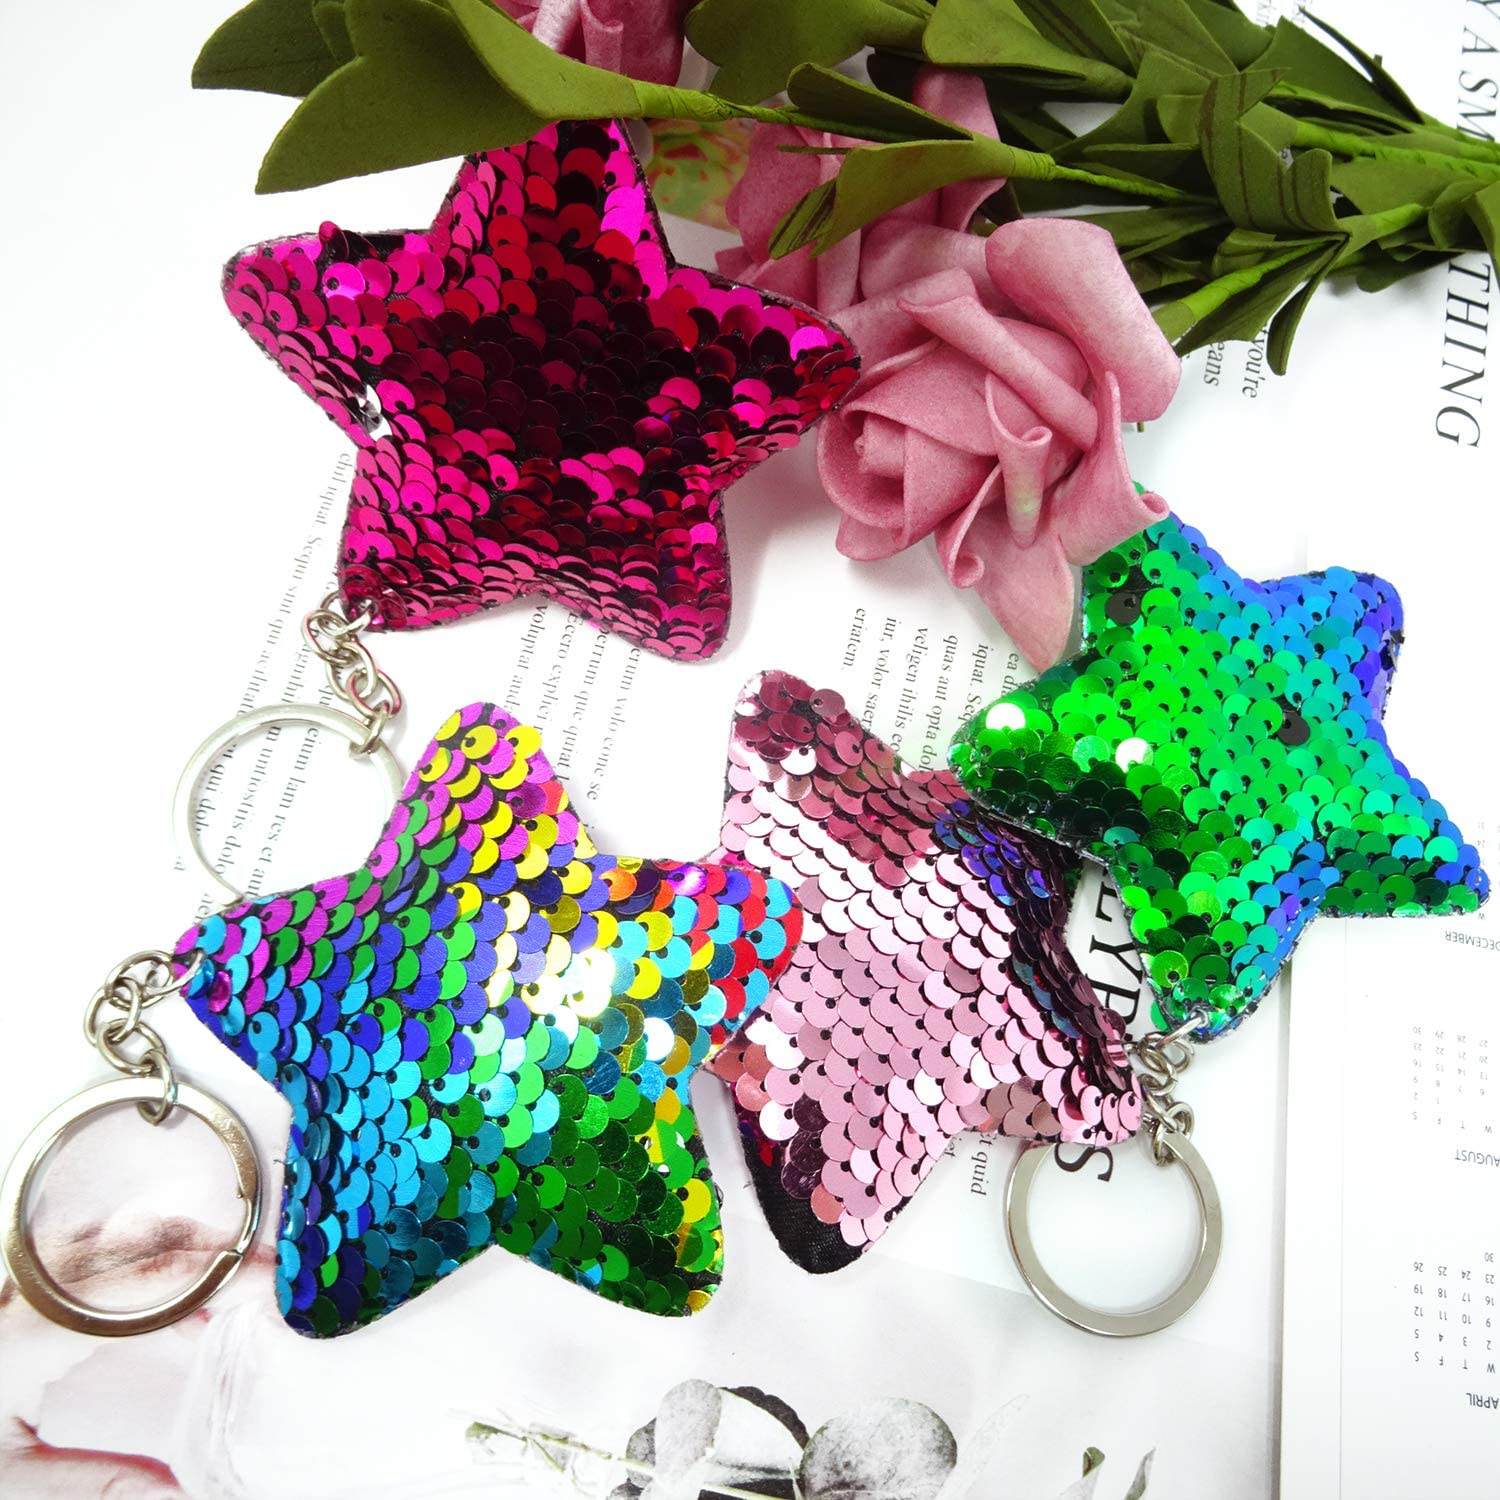 Honbay 4PCS Glitter Reversible Sequins Star Shaped Keychains Party Favors